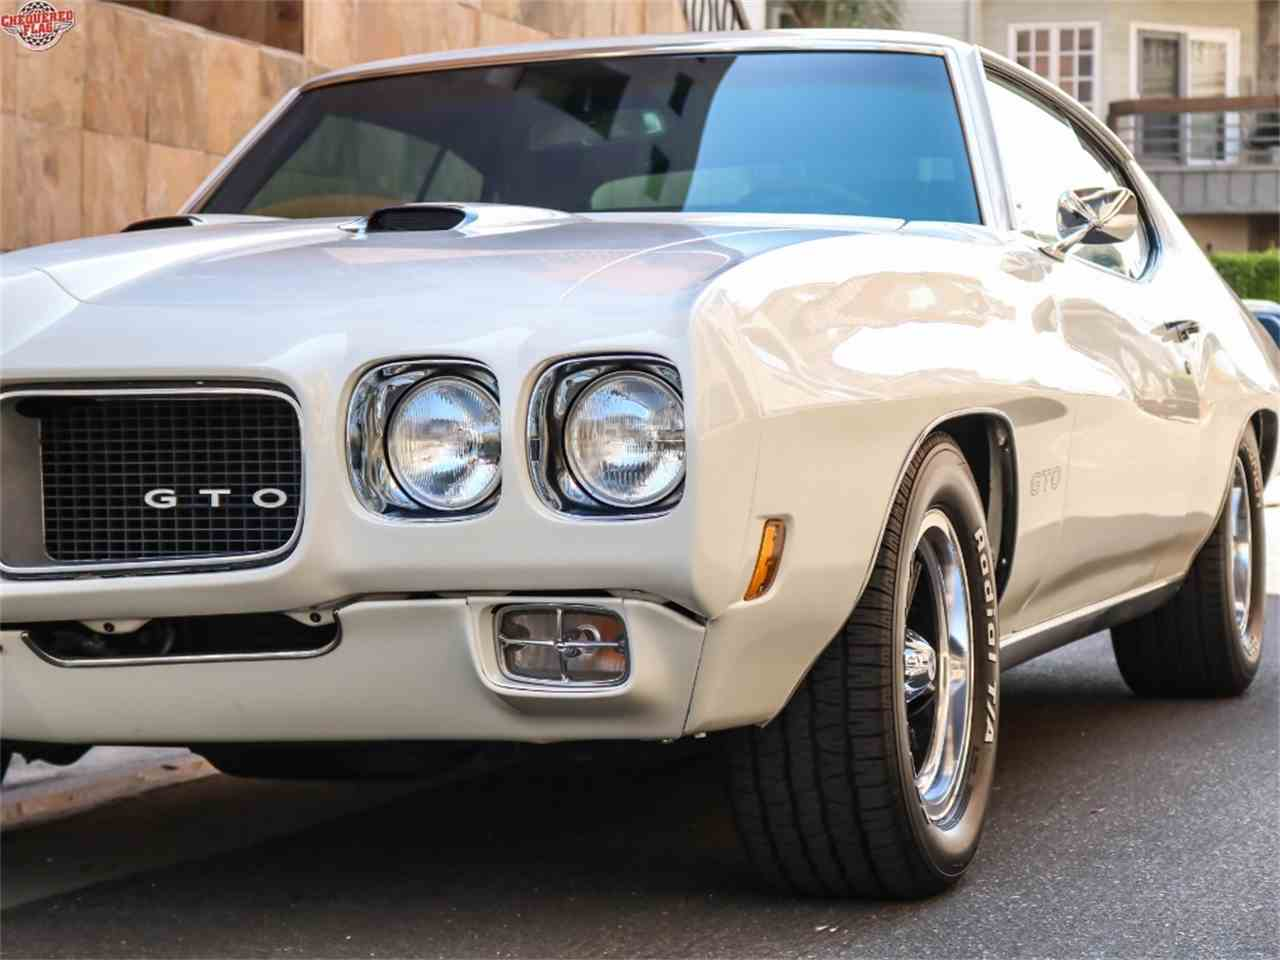 Large Picture of Classic 1970 Pontiac GTO - $38,500.00 Offered by Chequered Flag International - LTS2